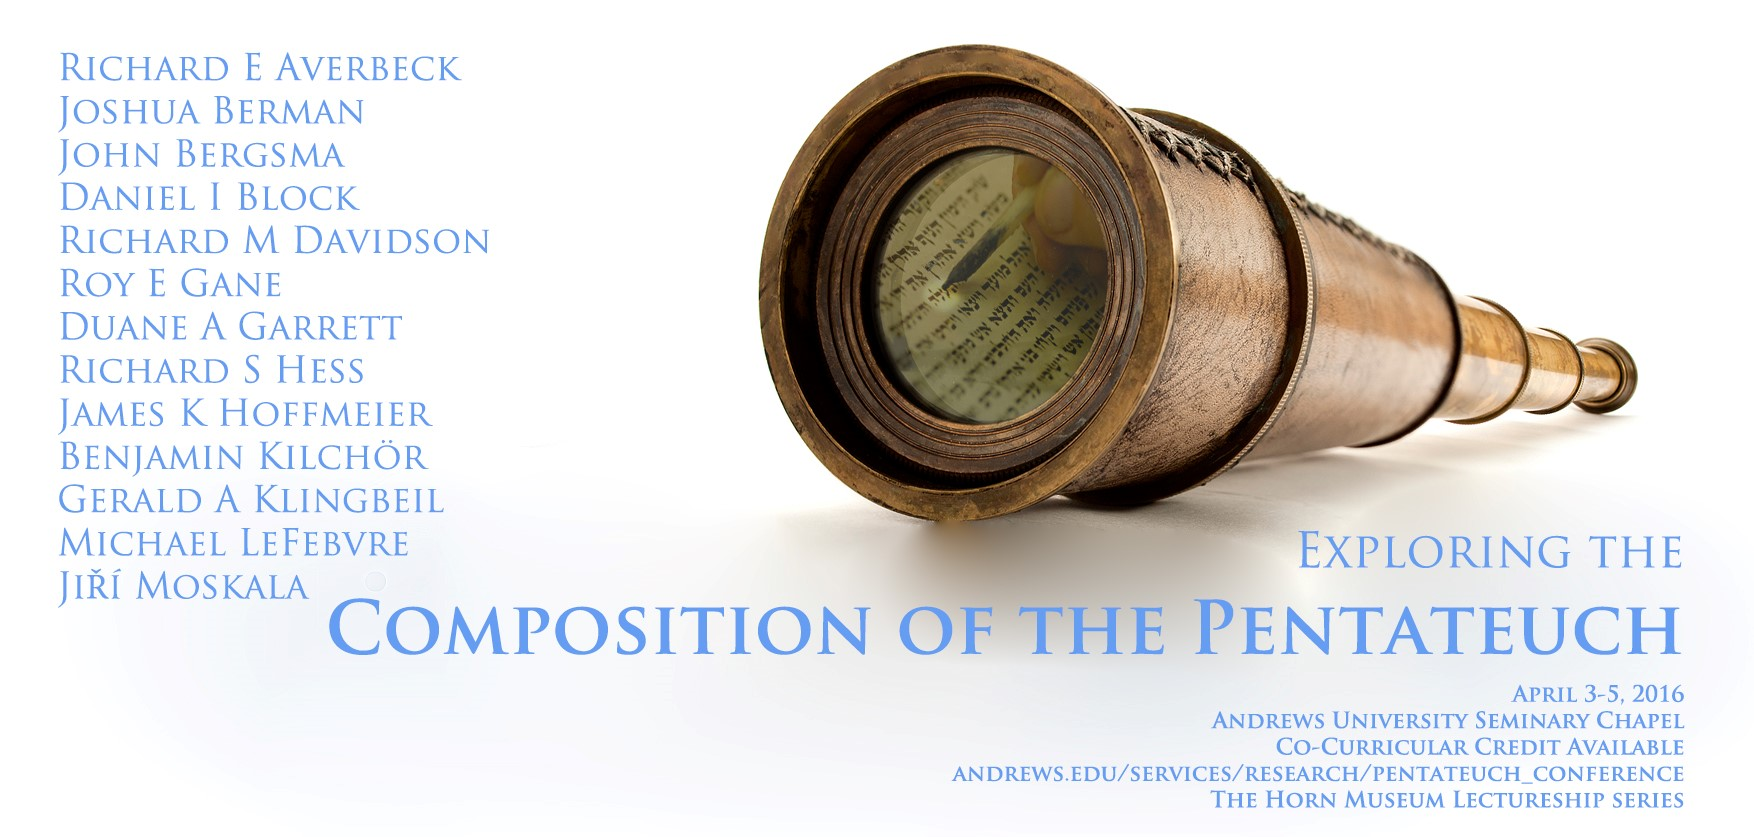 Exploring the Composition of the Pentateuch Conference